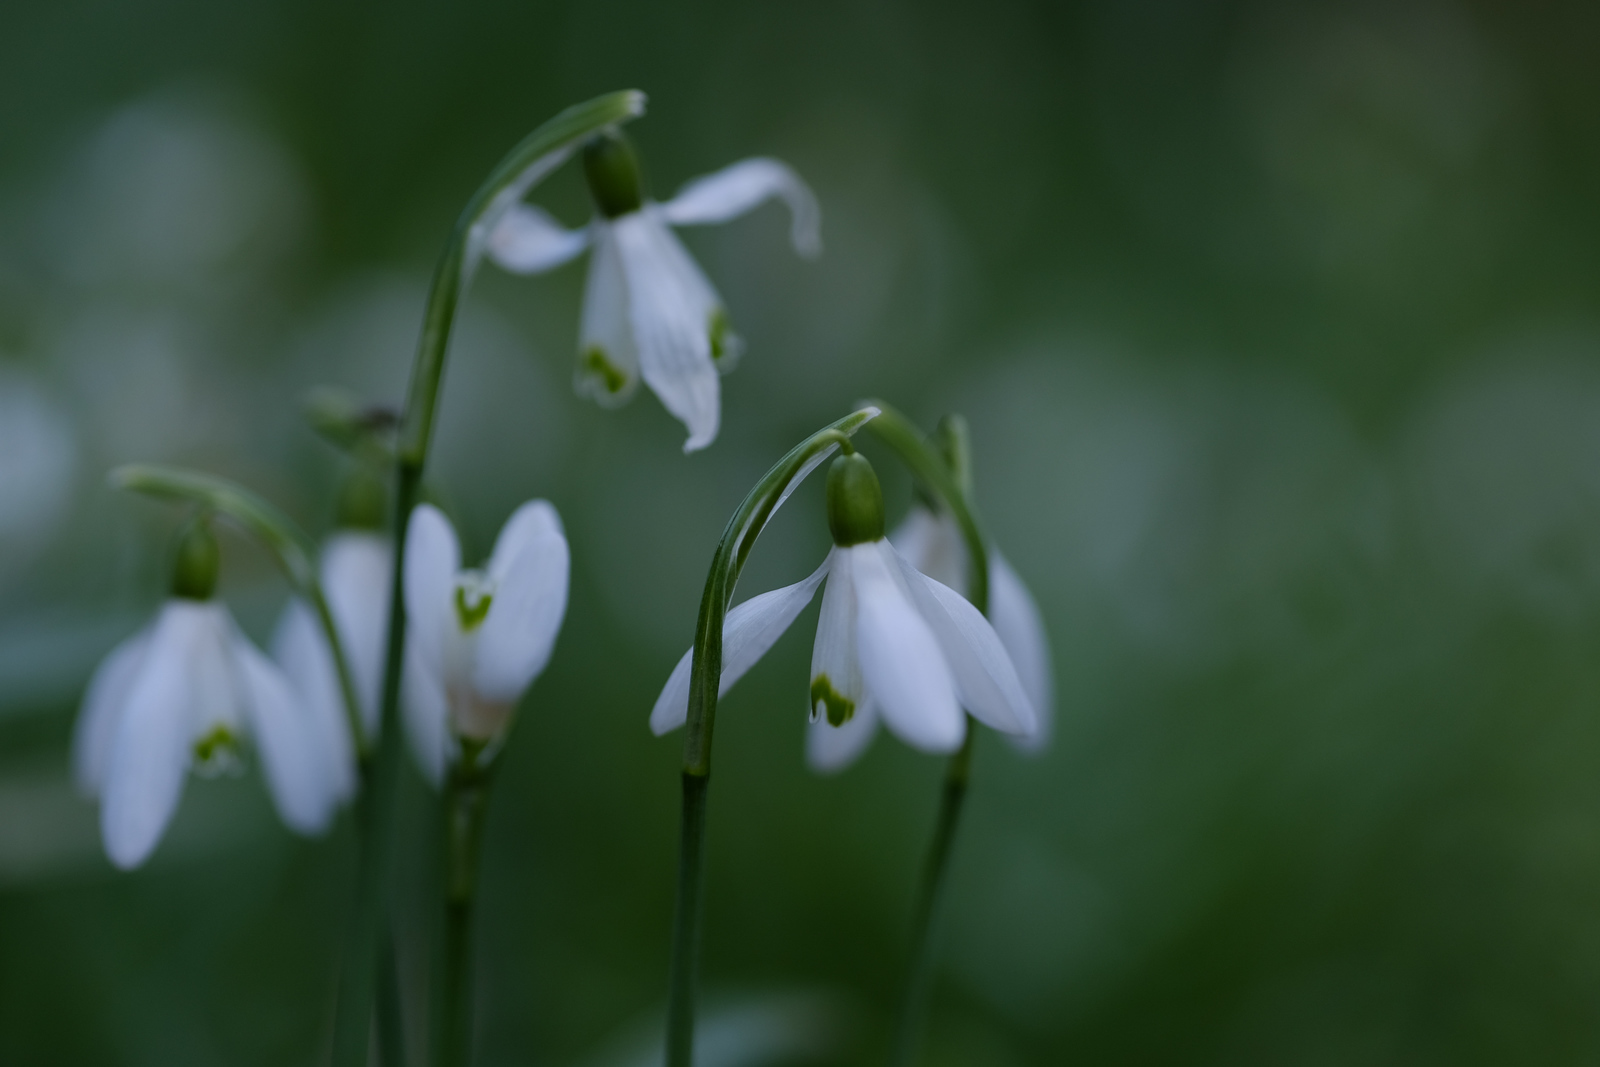 fujifilm xf90mm snowdrops flowers nature photography